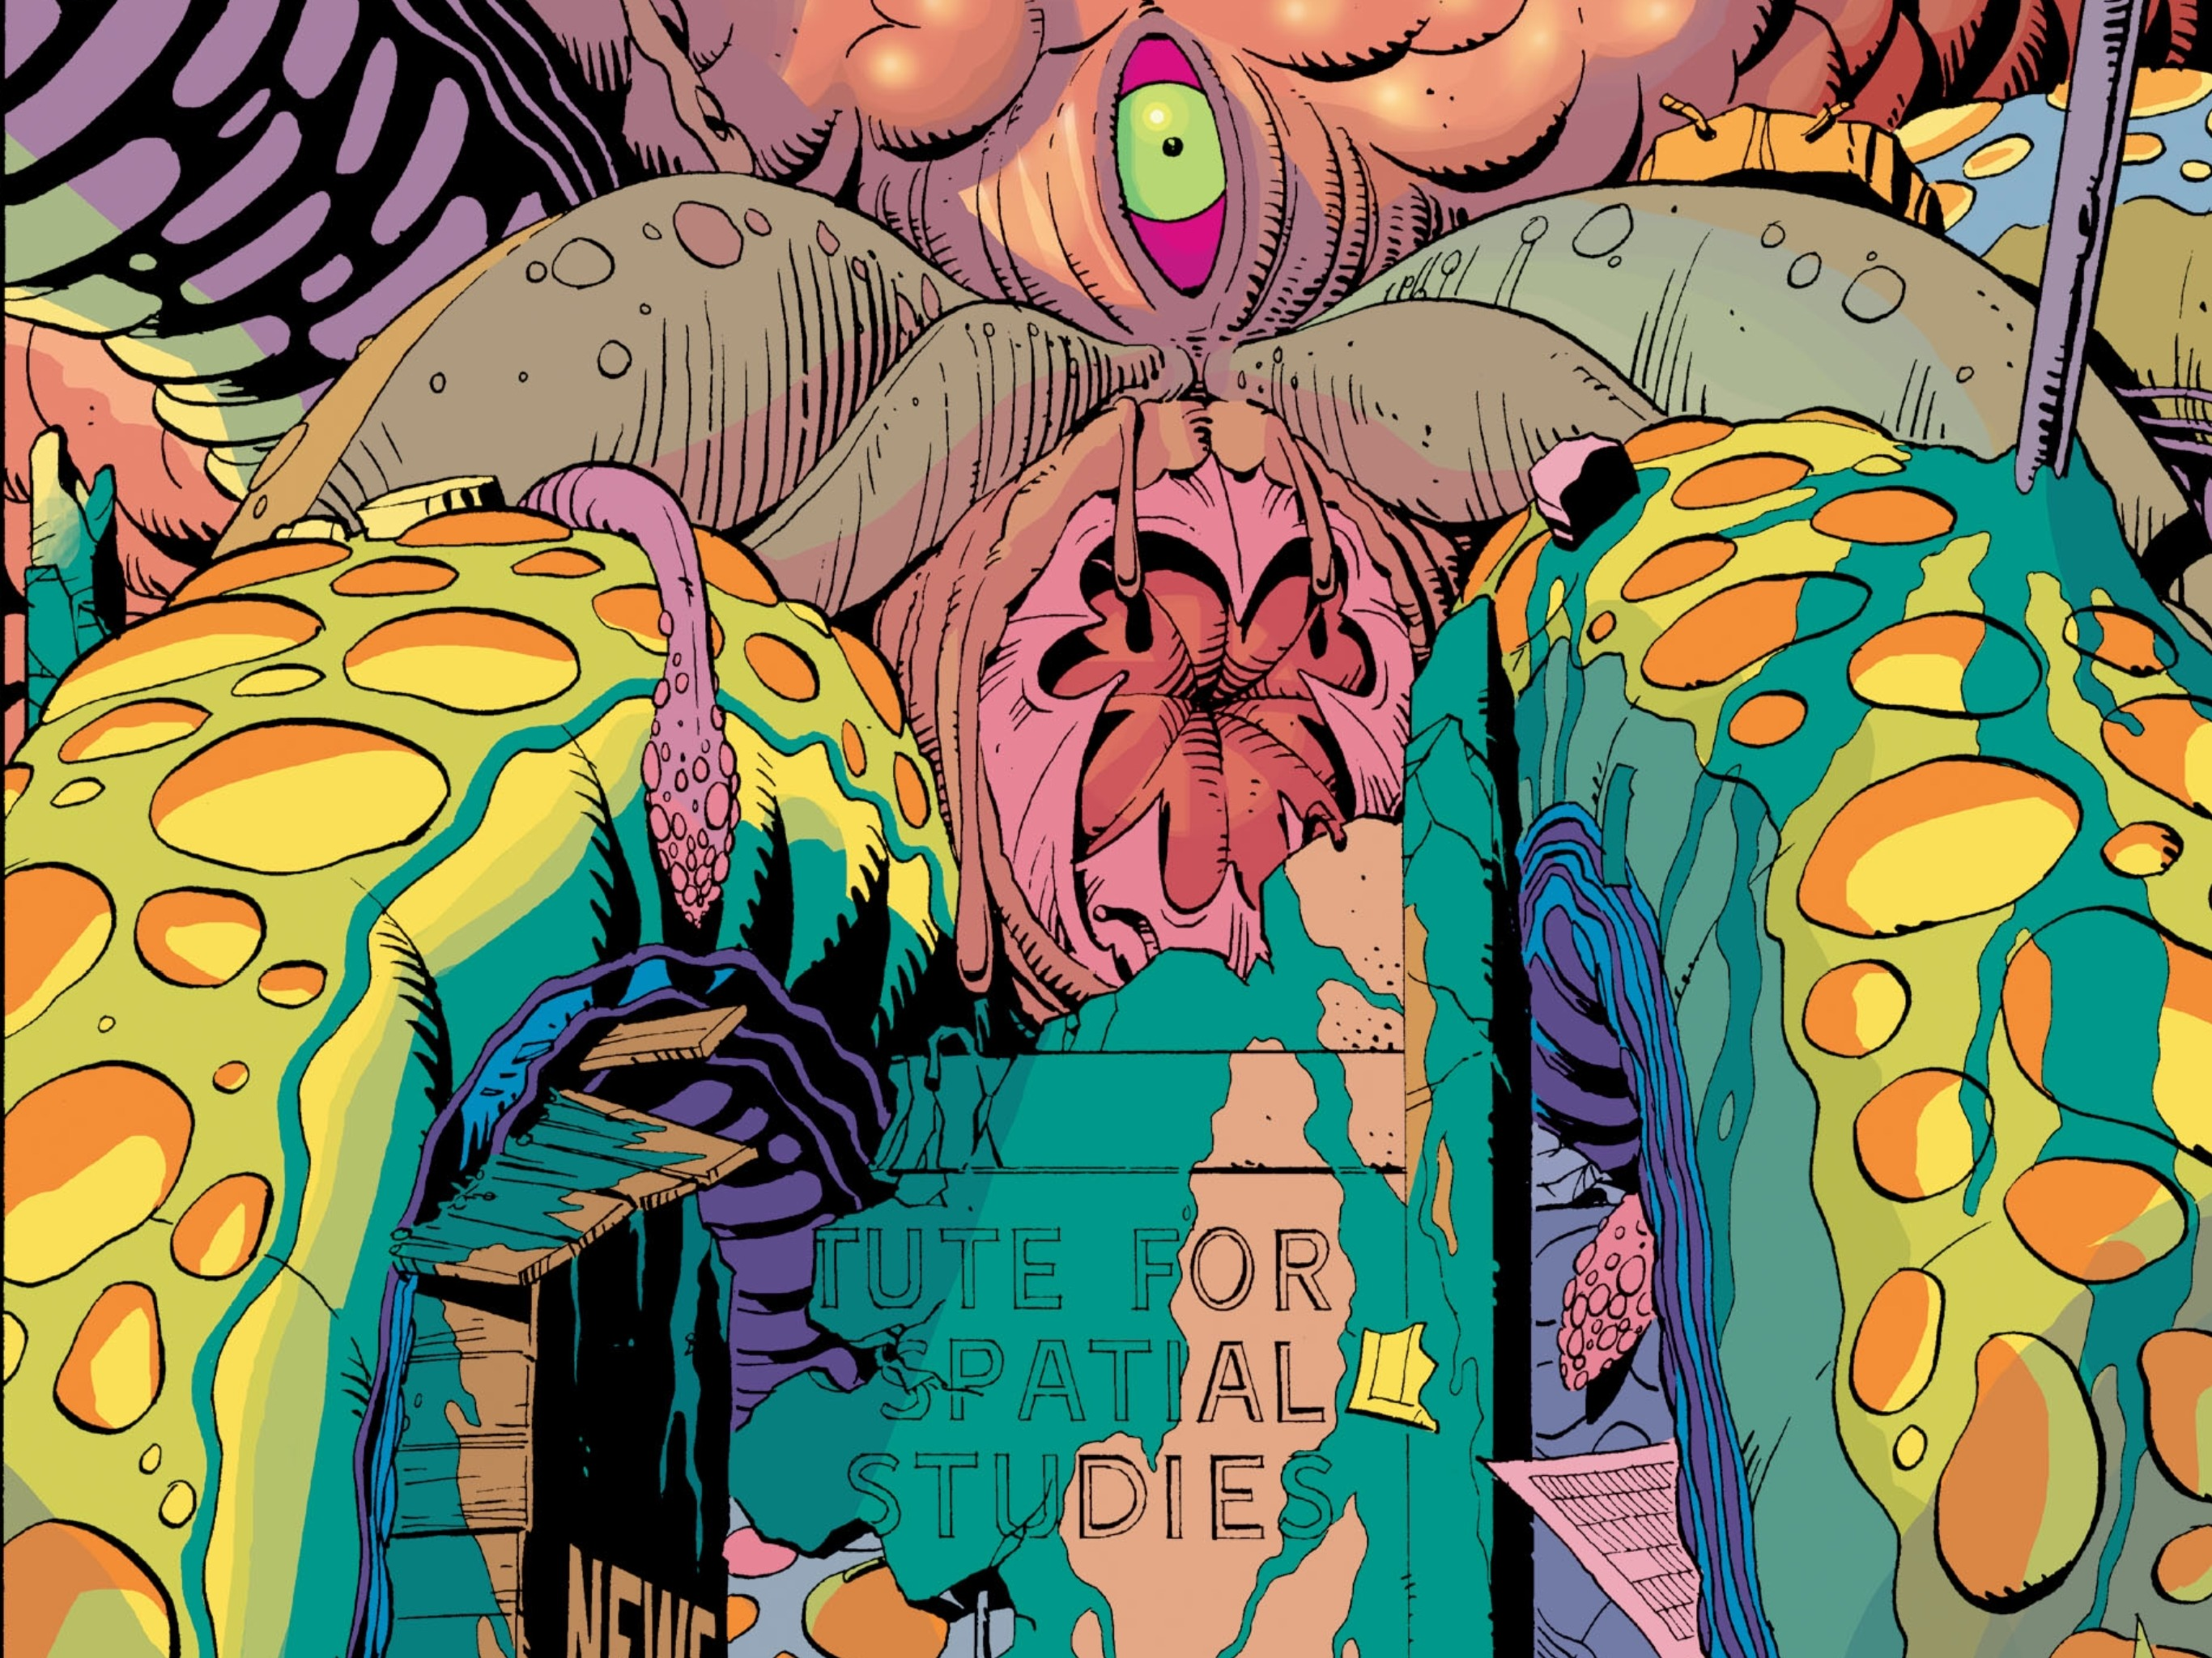 HBO's Watchmen finale echoed the final issue of the comics in fascinating ways